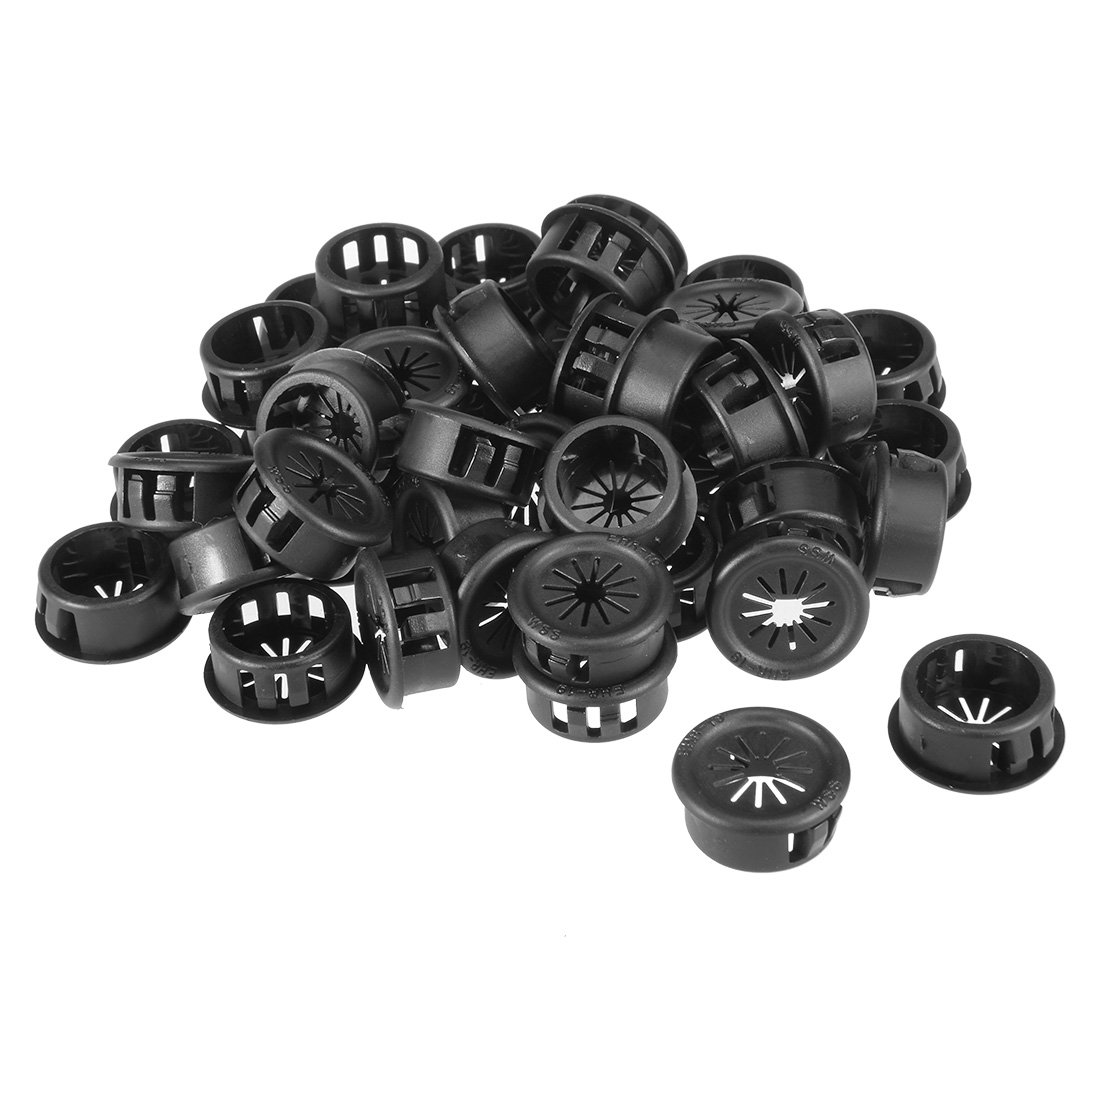 uxcell 45pcs 19mm Mounted Dia Cable Hose Snap Bushing Grommet Protector Black